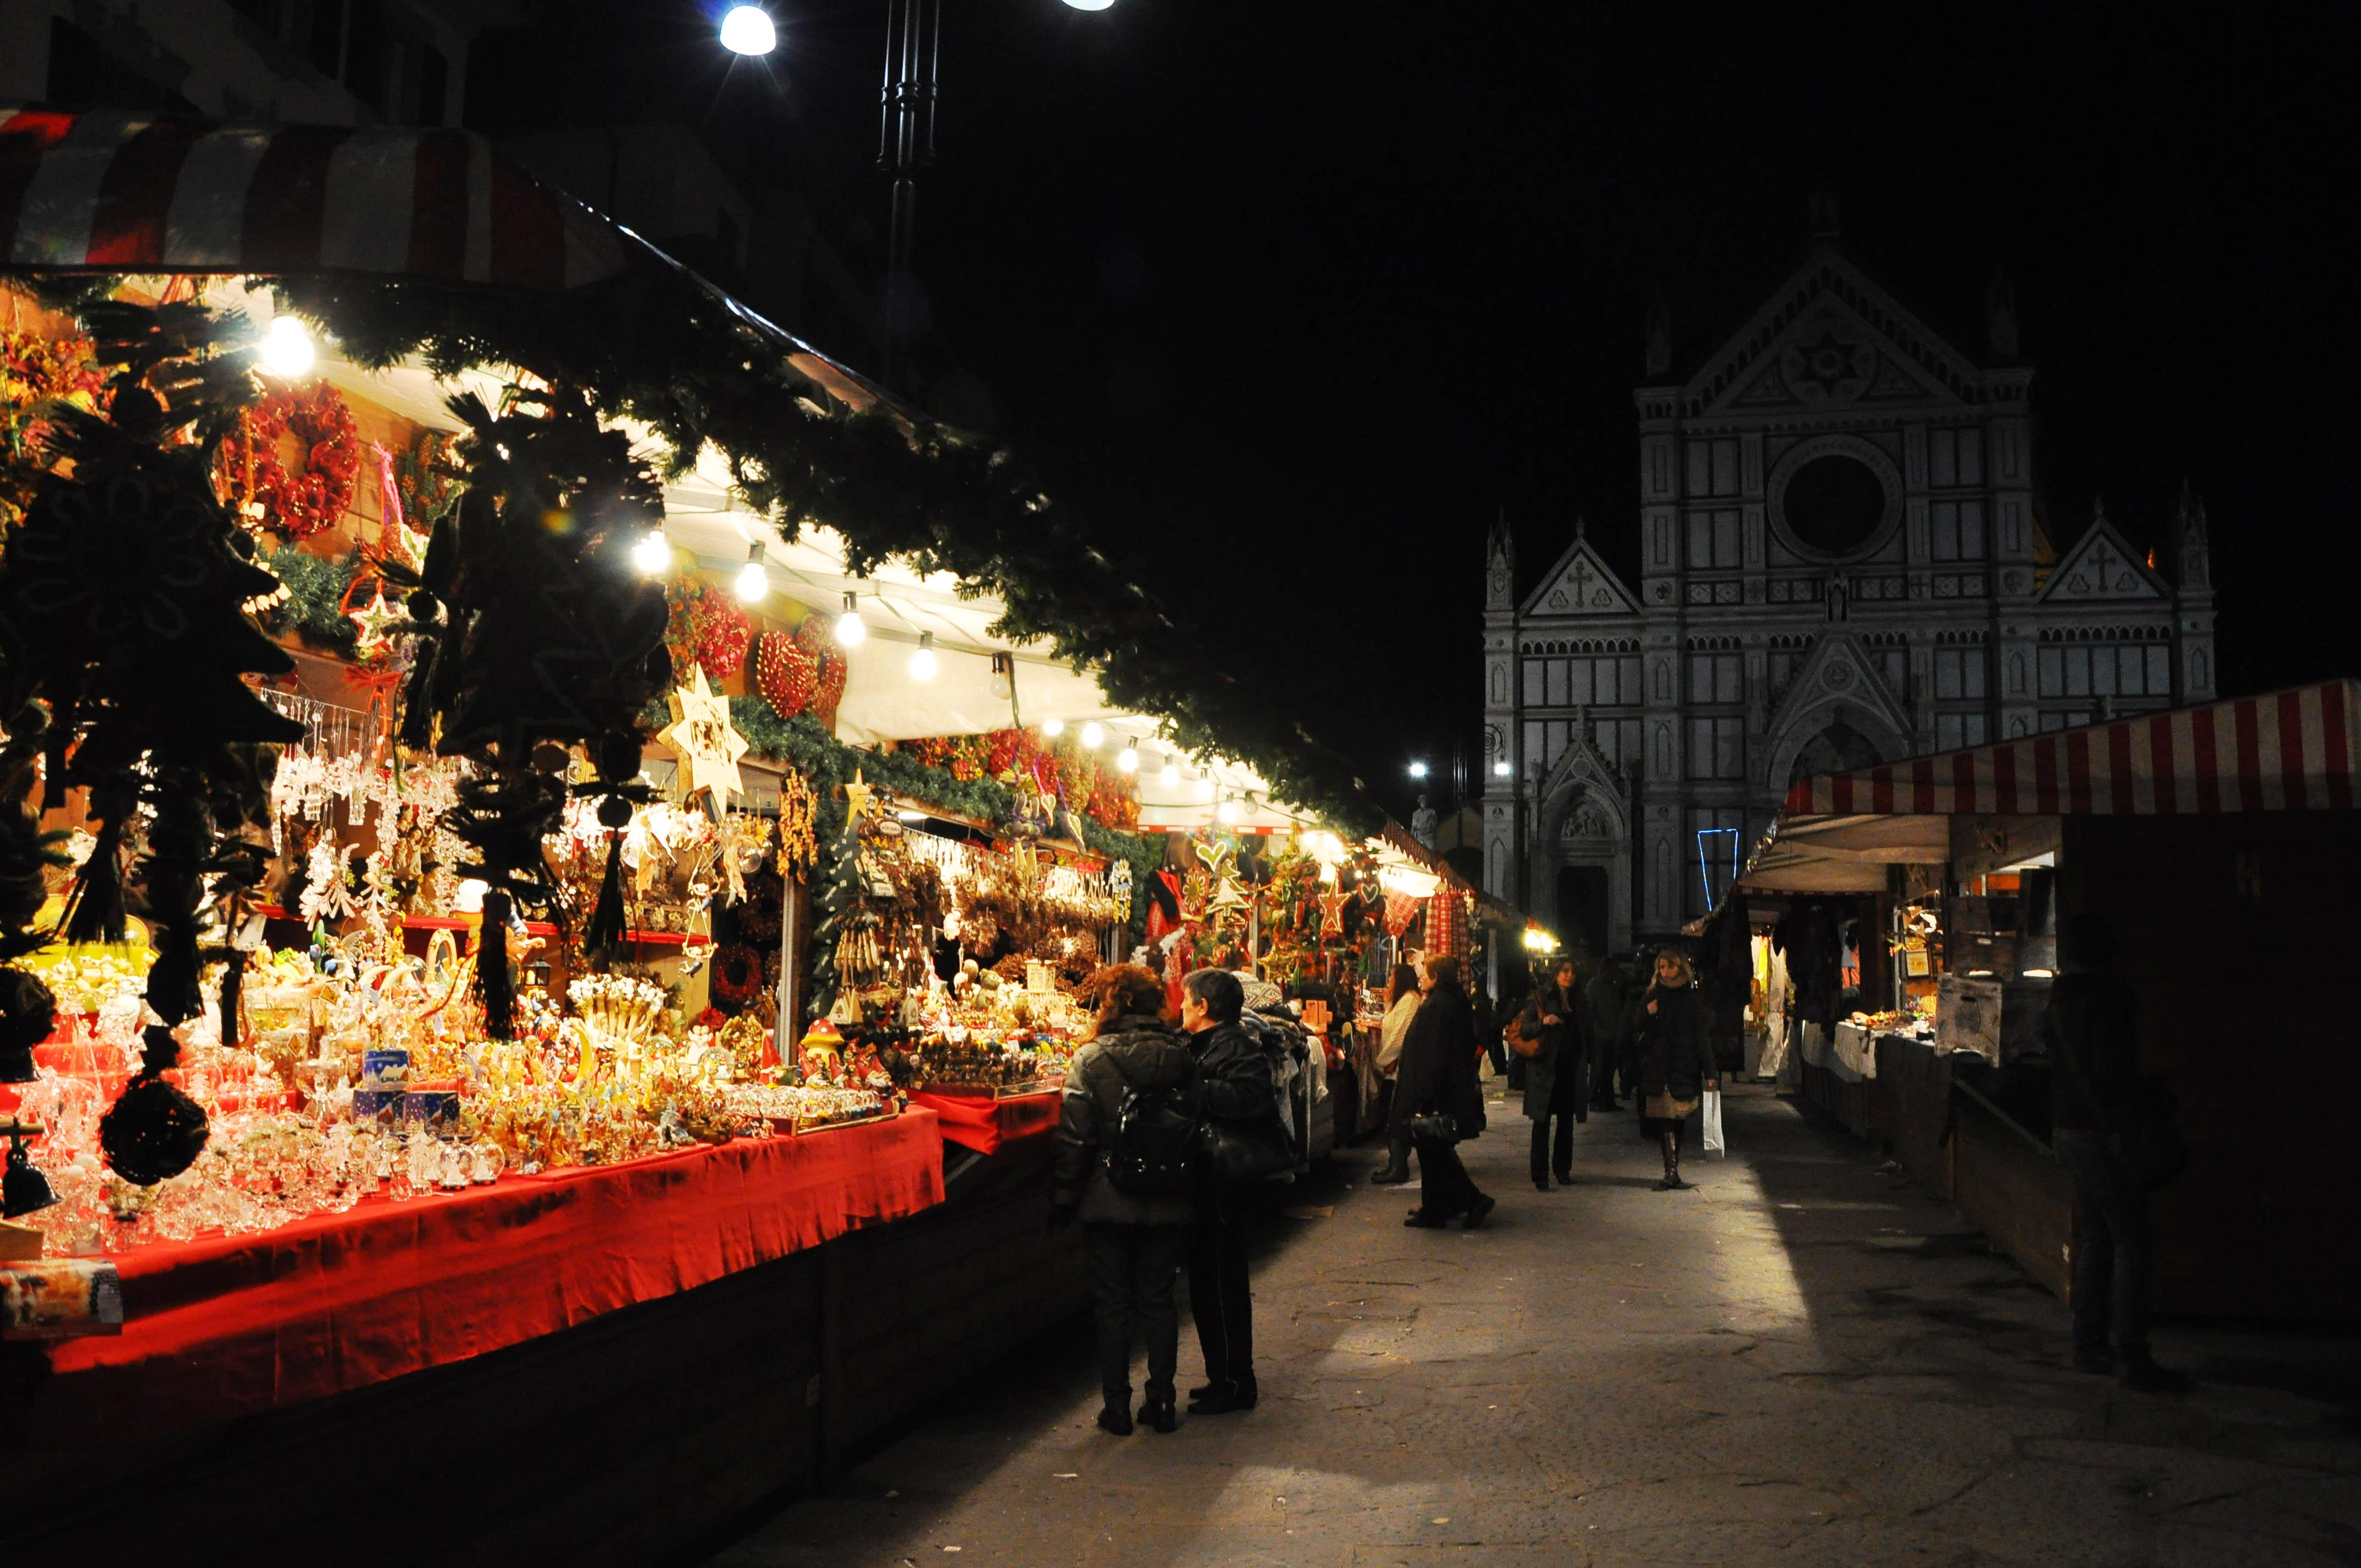 December in cities like Florence comes with perks, including Christmas markets!